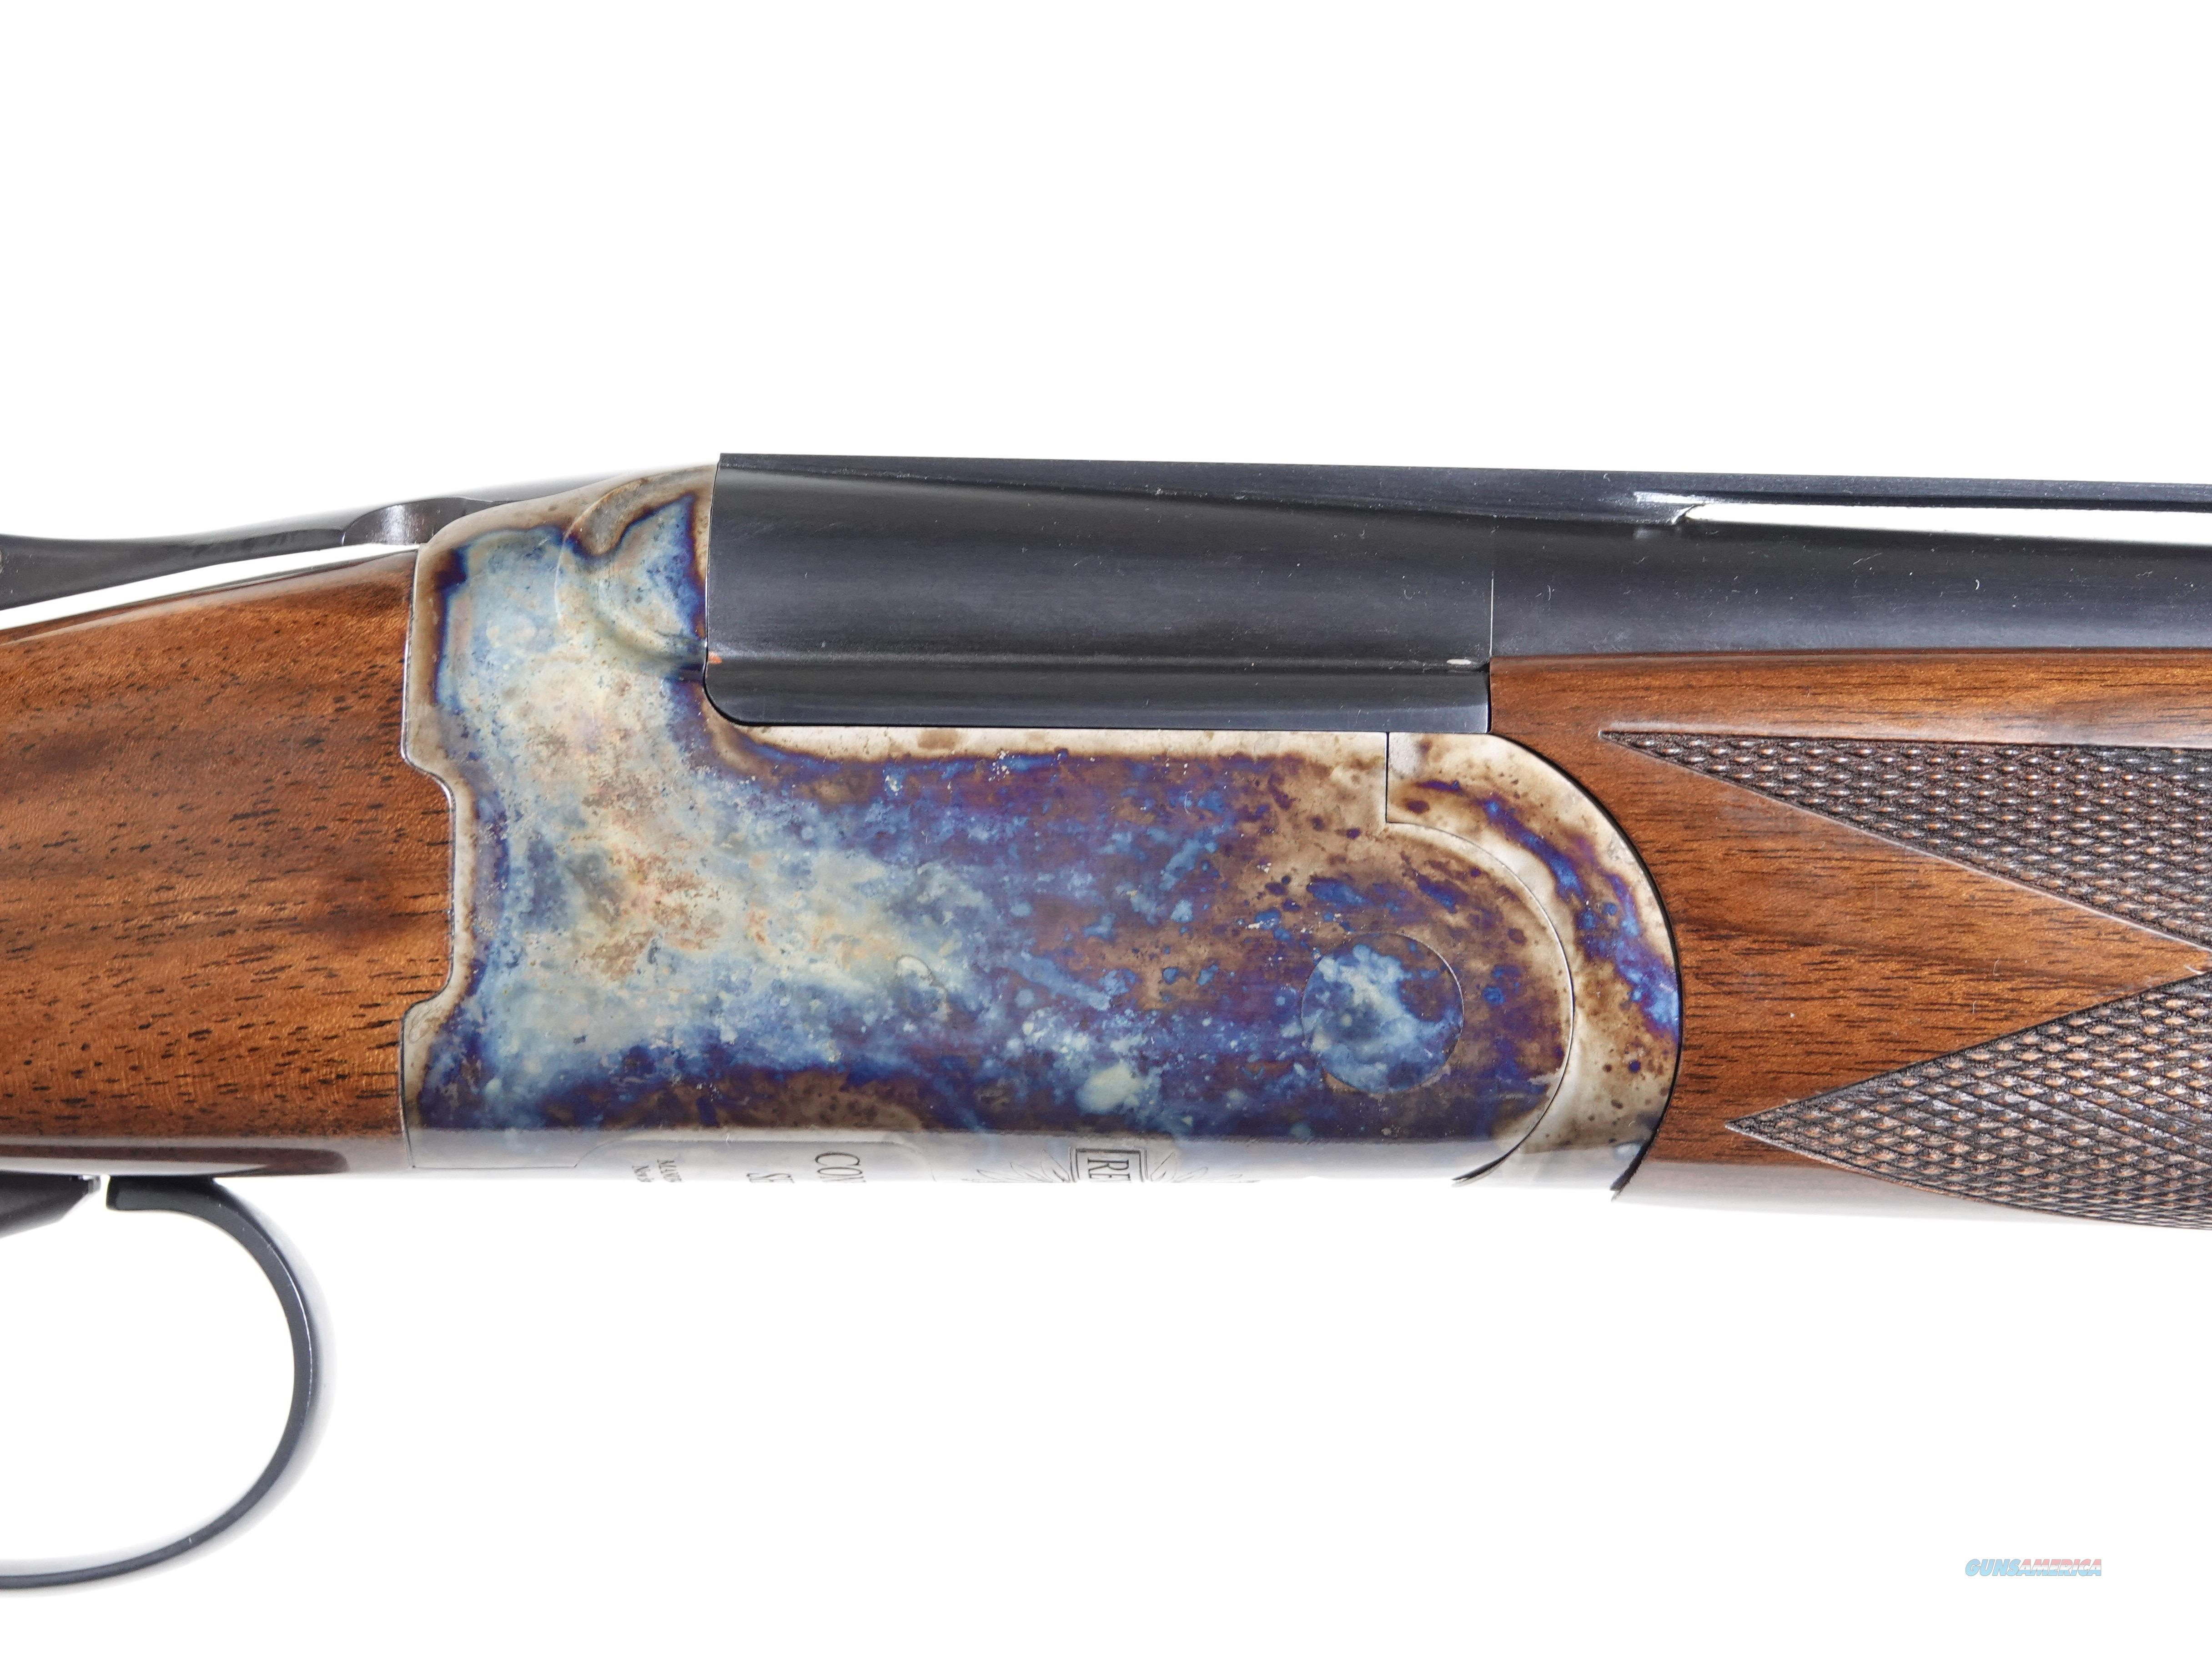 "CSMC - REVELATION 20g O/U ., 28"" barrels #46704  Guns > Shotguns > Connecticut (Galazan) Shotguns"